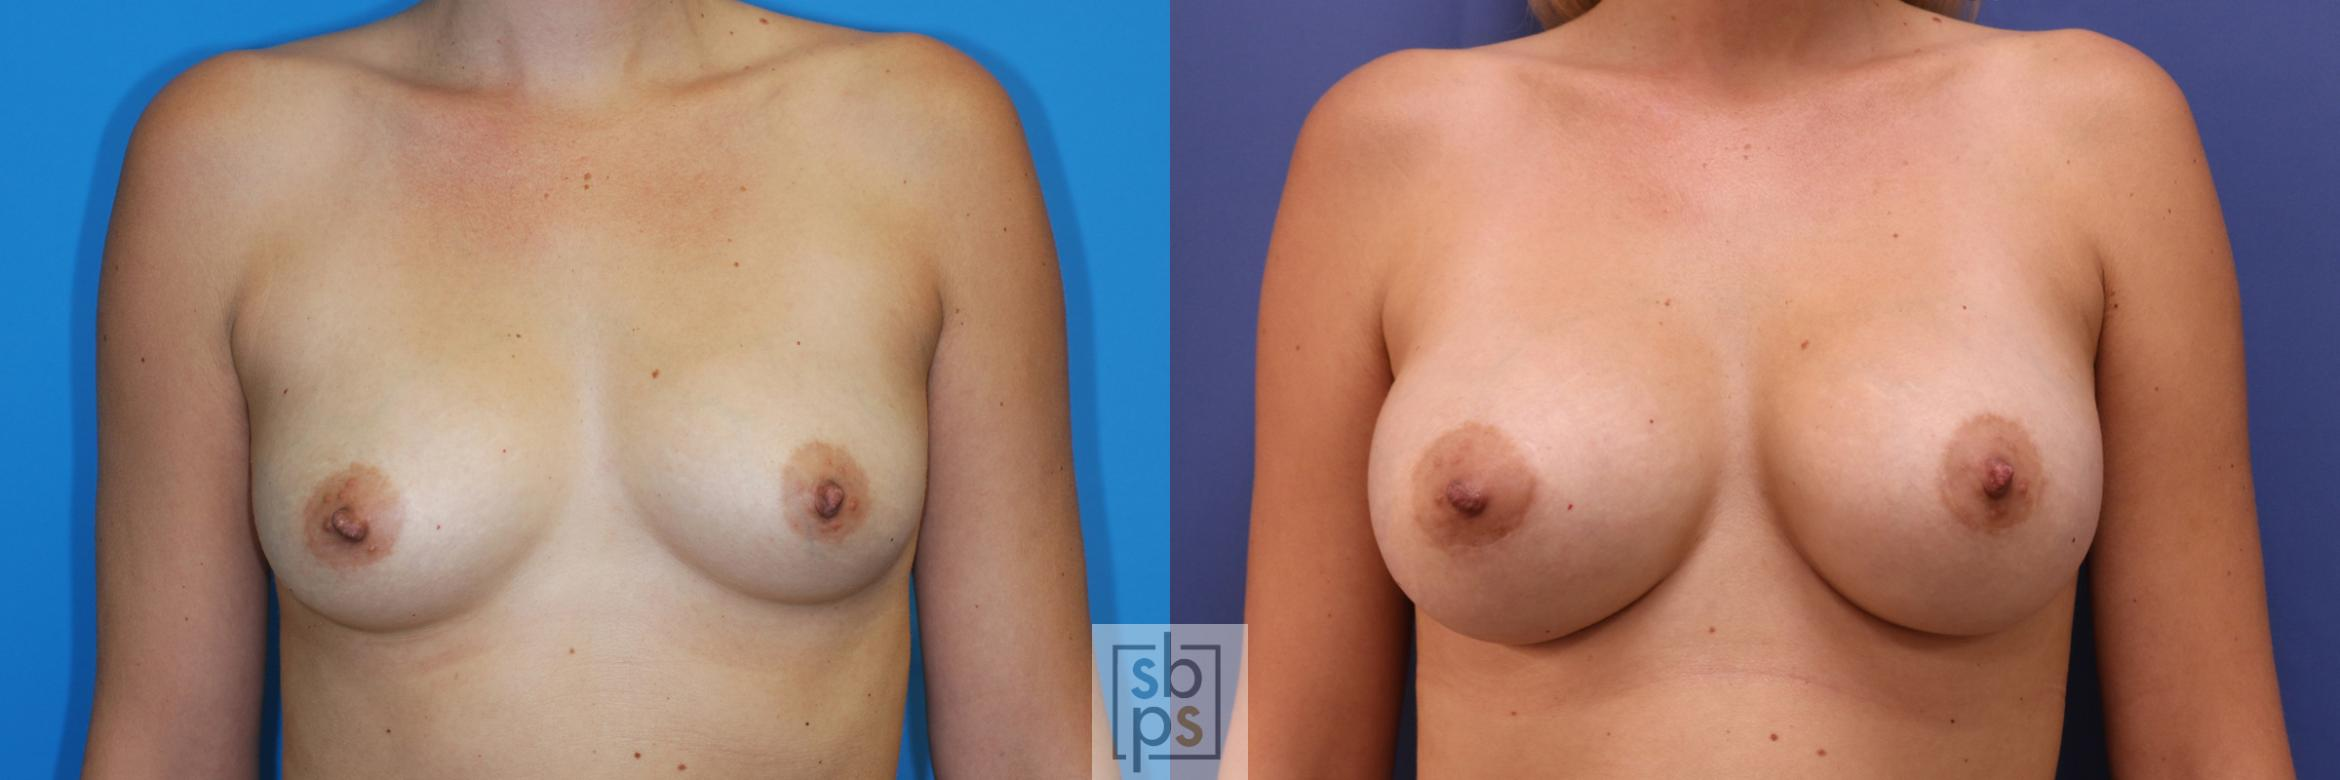 Breast Augmentation Before & After Photo | Torrance, CA | Plastic Surgery Source